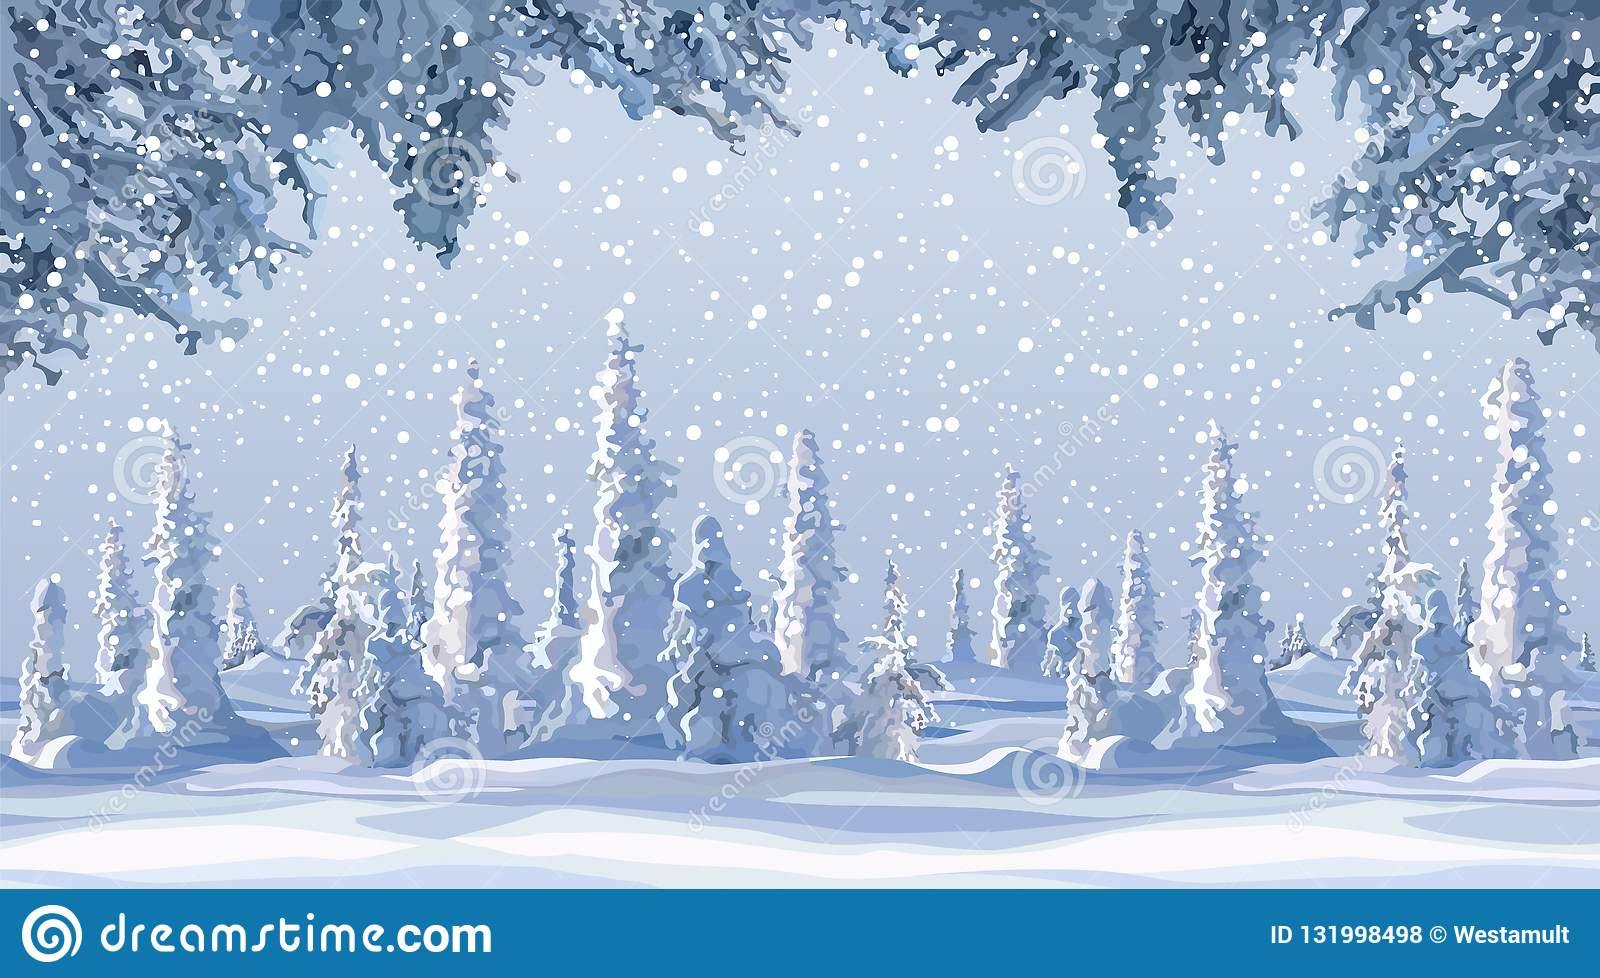 Cartoon Winter Background With Snow Covered Firs In Snowfall Stock Vector Illustration Of Snowflakes Frozen 131998498